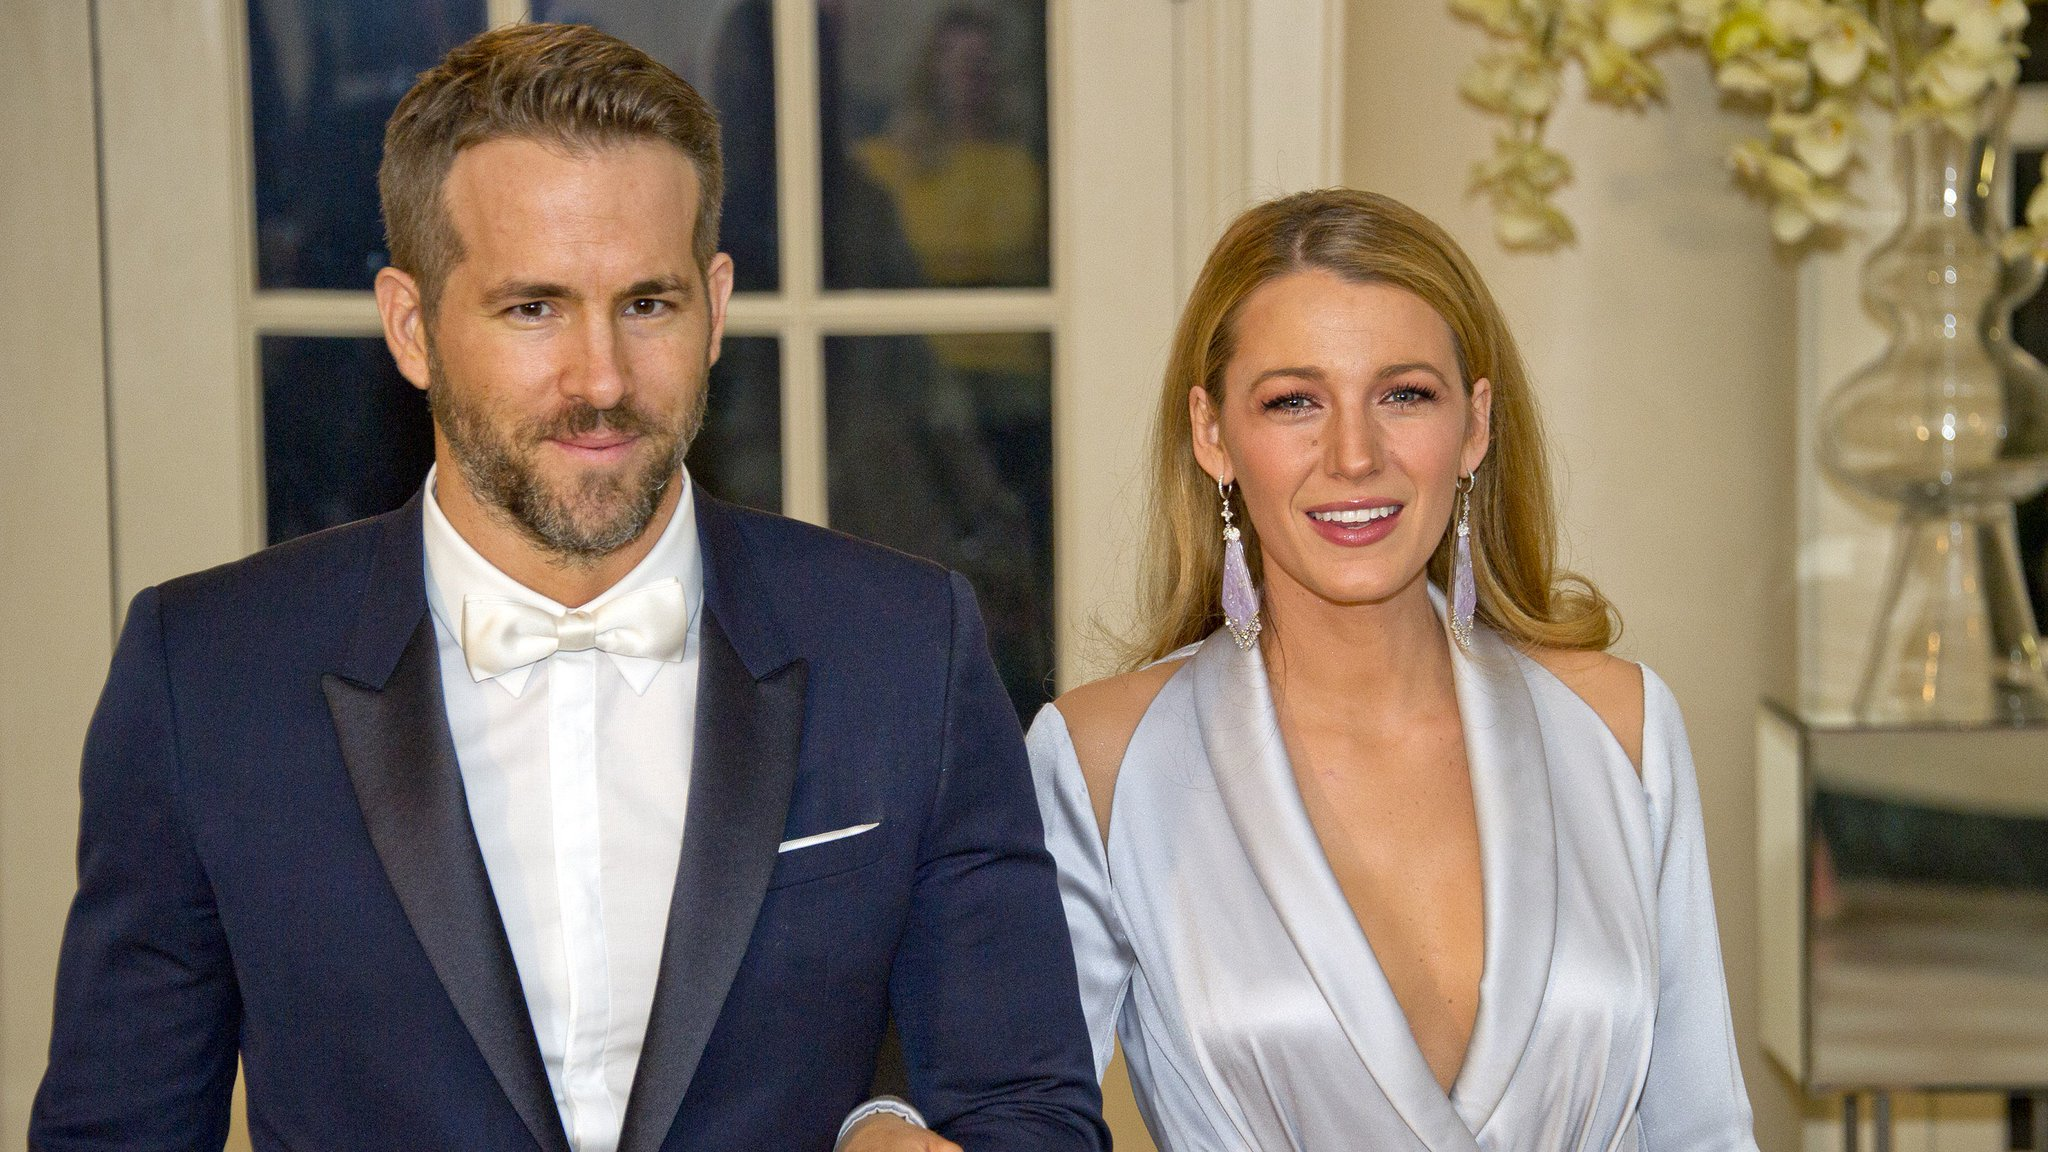 Blake Lively says filming sex scenes is easier when your husband is Ryan Reynolds: https://t.co/R0DQ8zMulq https://t.co/C2ix27DMhR